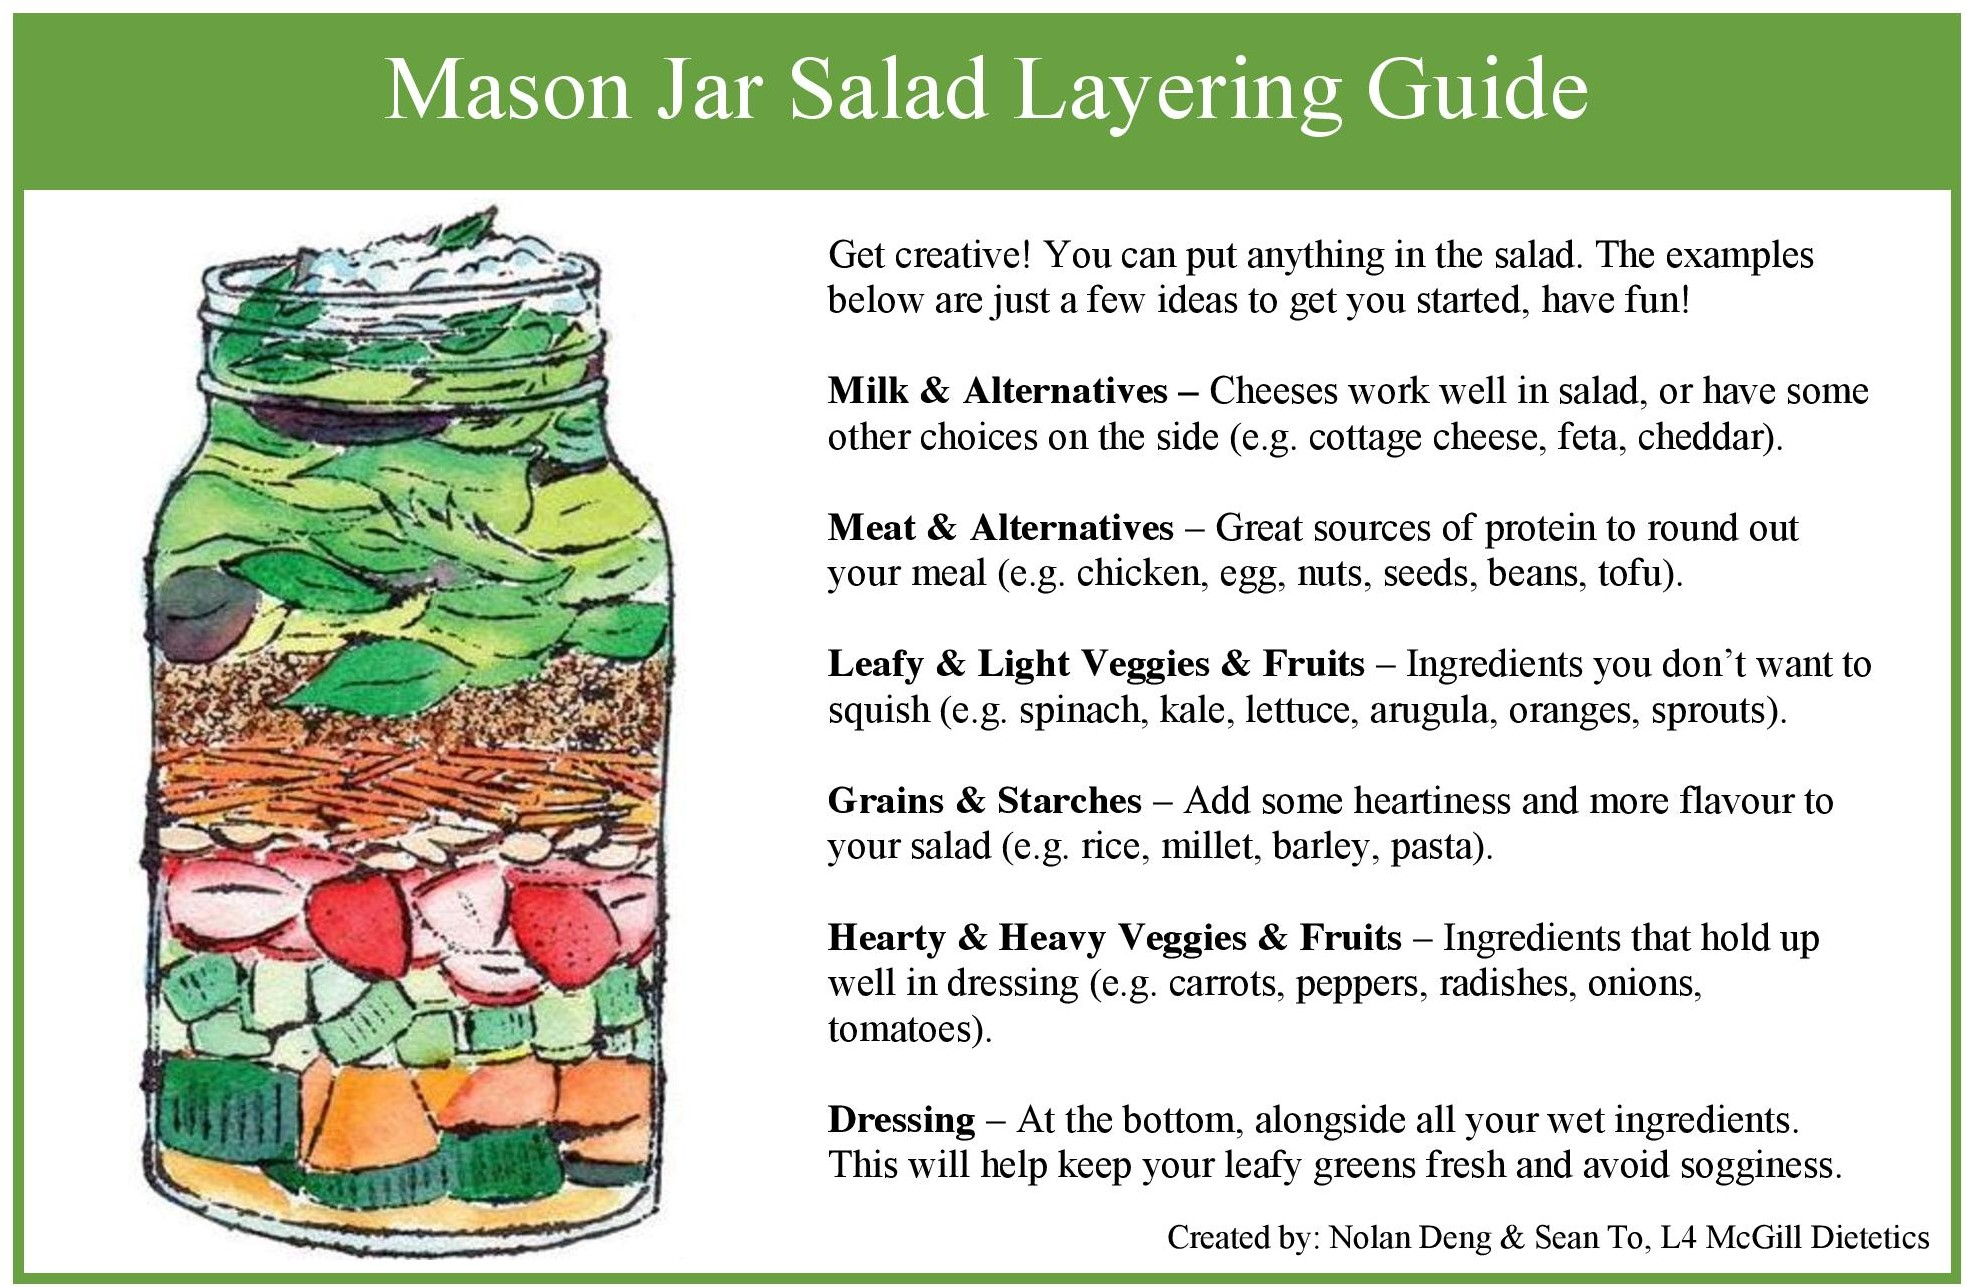 An image showing an example of a Mason Jar salad and its layers (Milk & Alternatives, Meat & Alternatives, Leafy & Light Veggies & Fruits, Grains & Starches, Hearty & Heavy Veggies & Fruits, Dressing